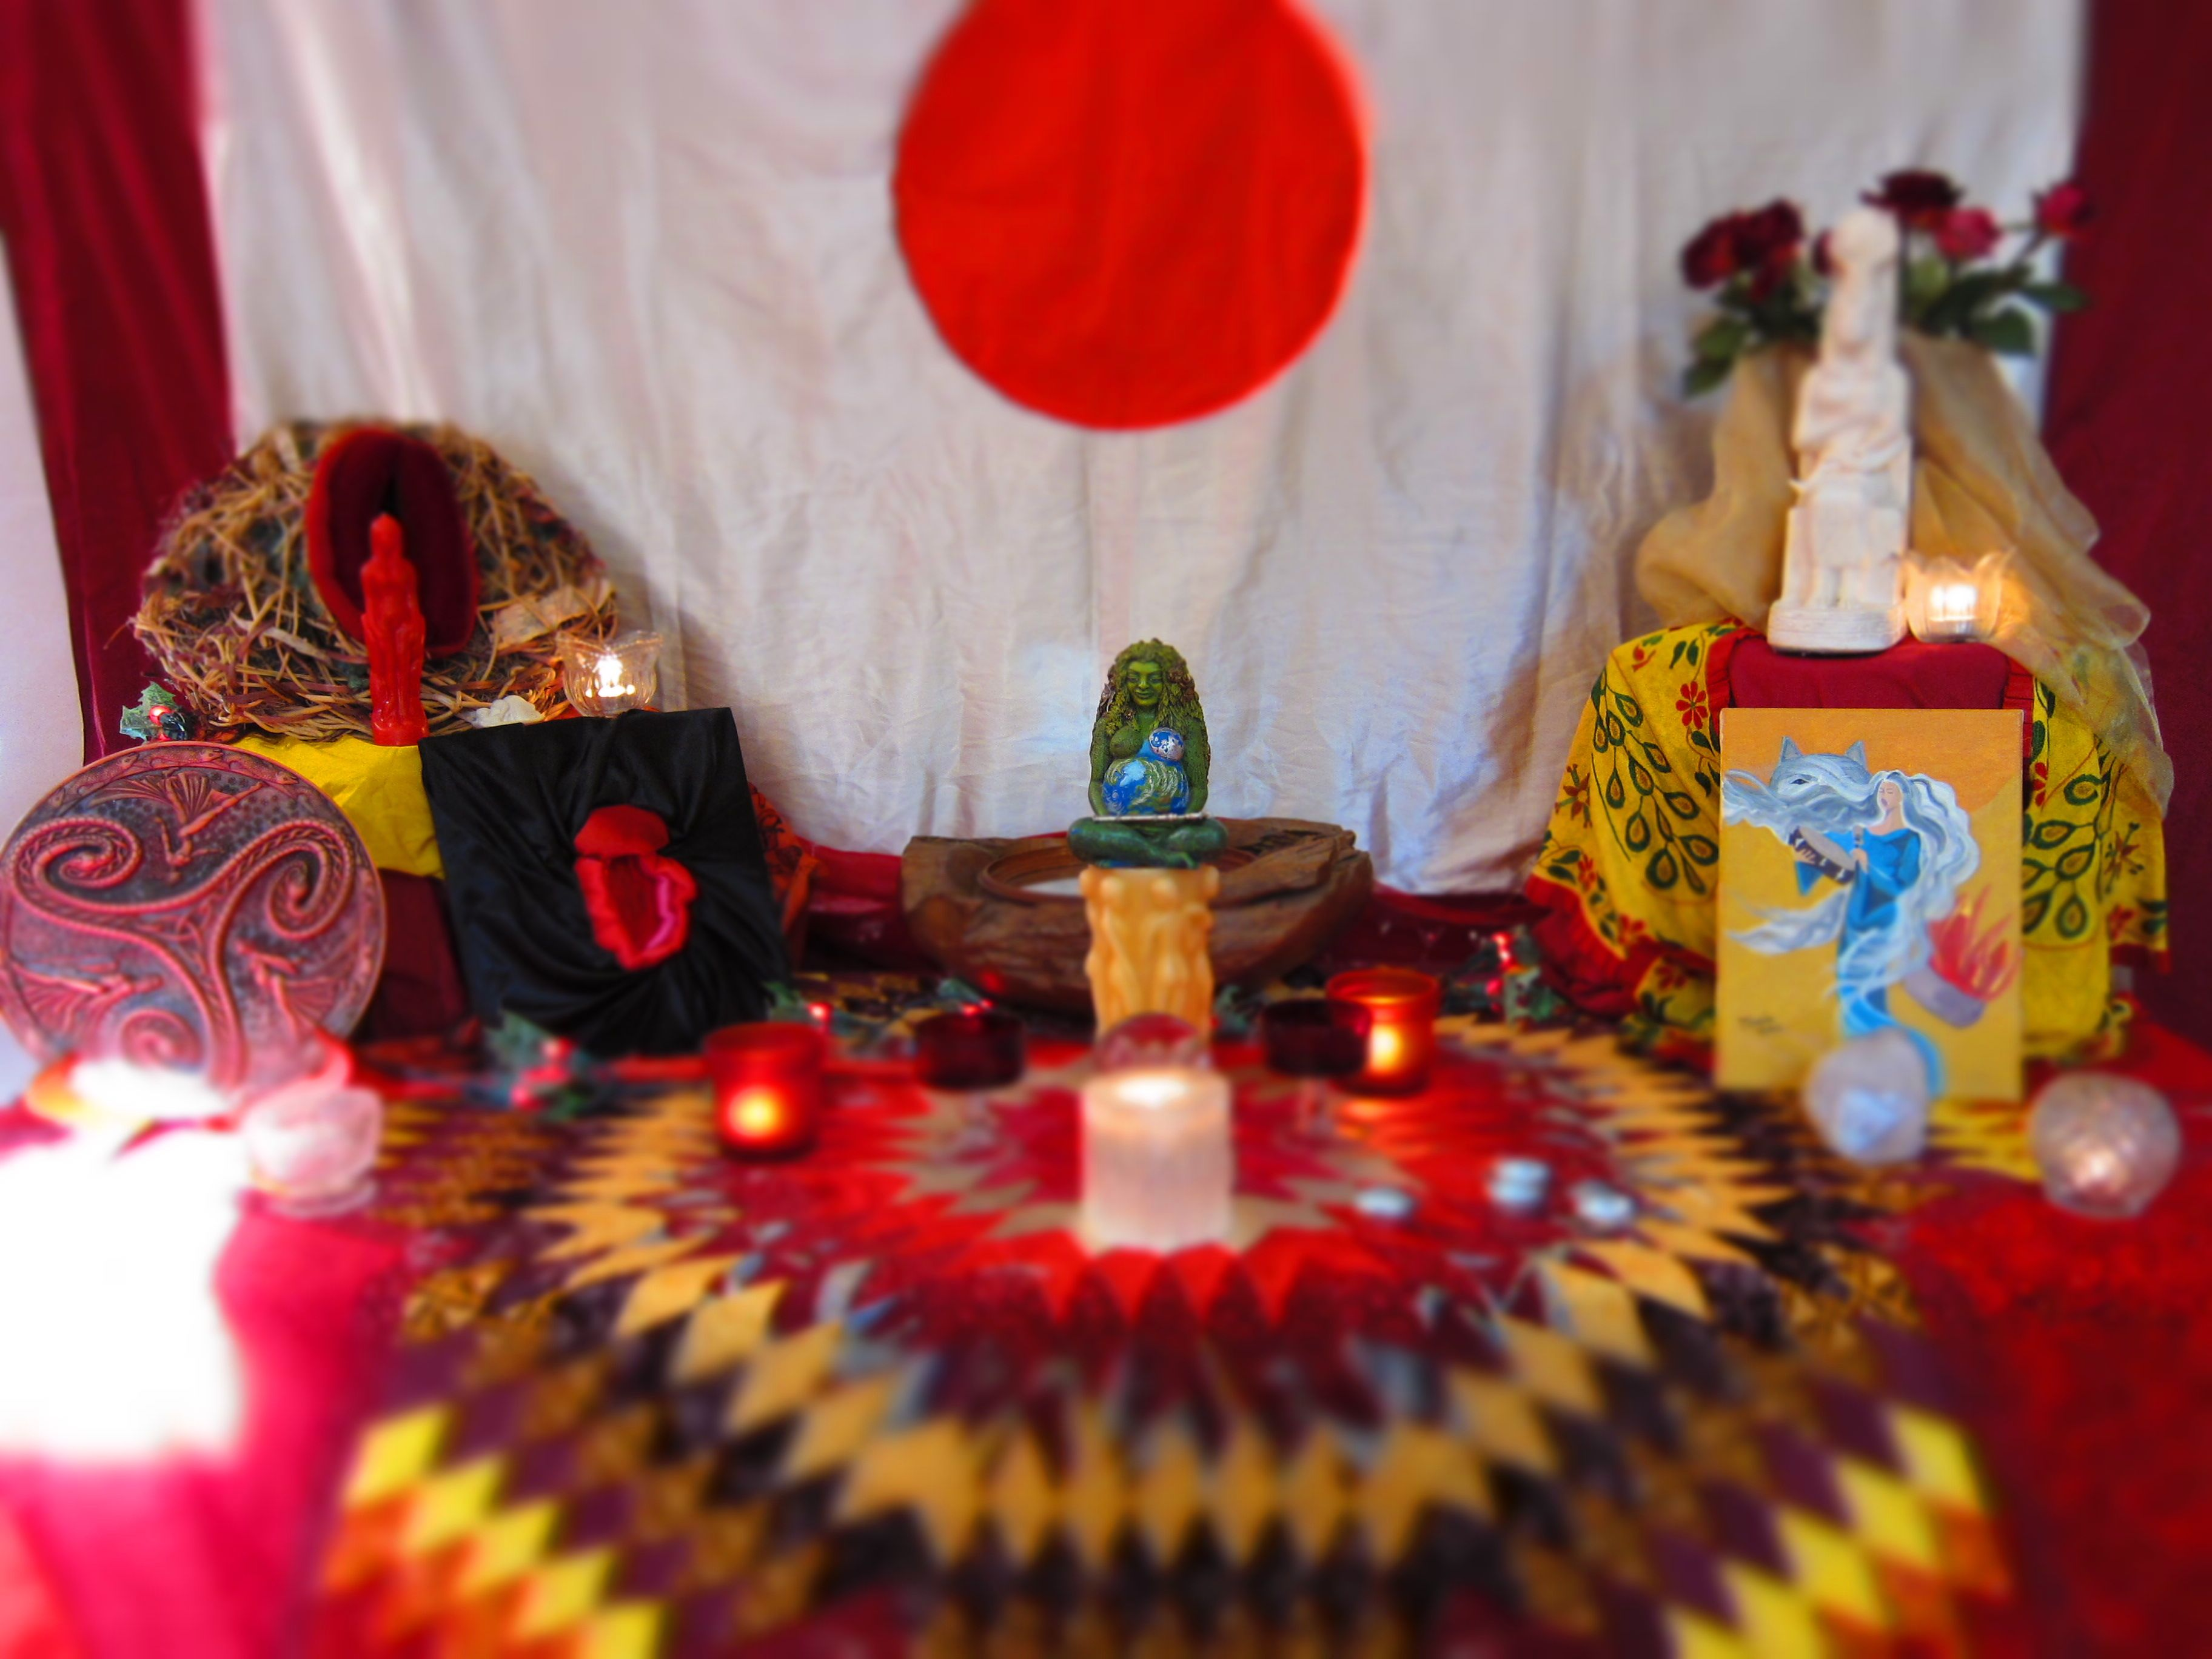 Red Tent Temple at the Women's Belly and Womb Conference, Shutesbury, MA